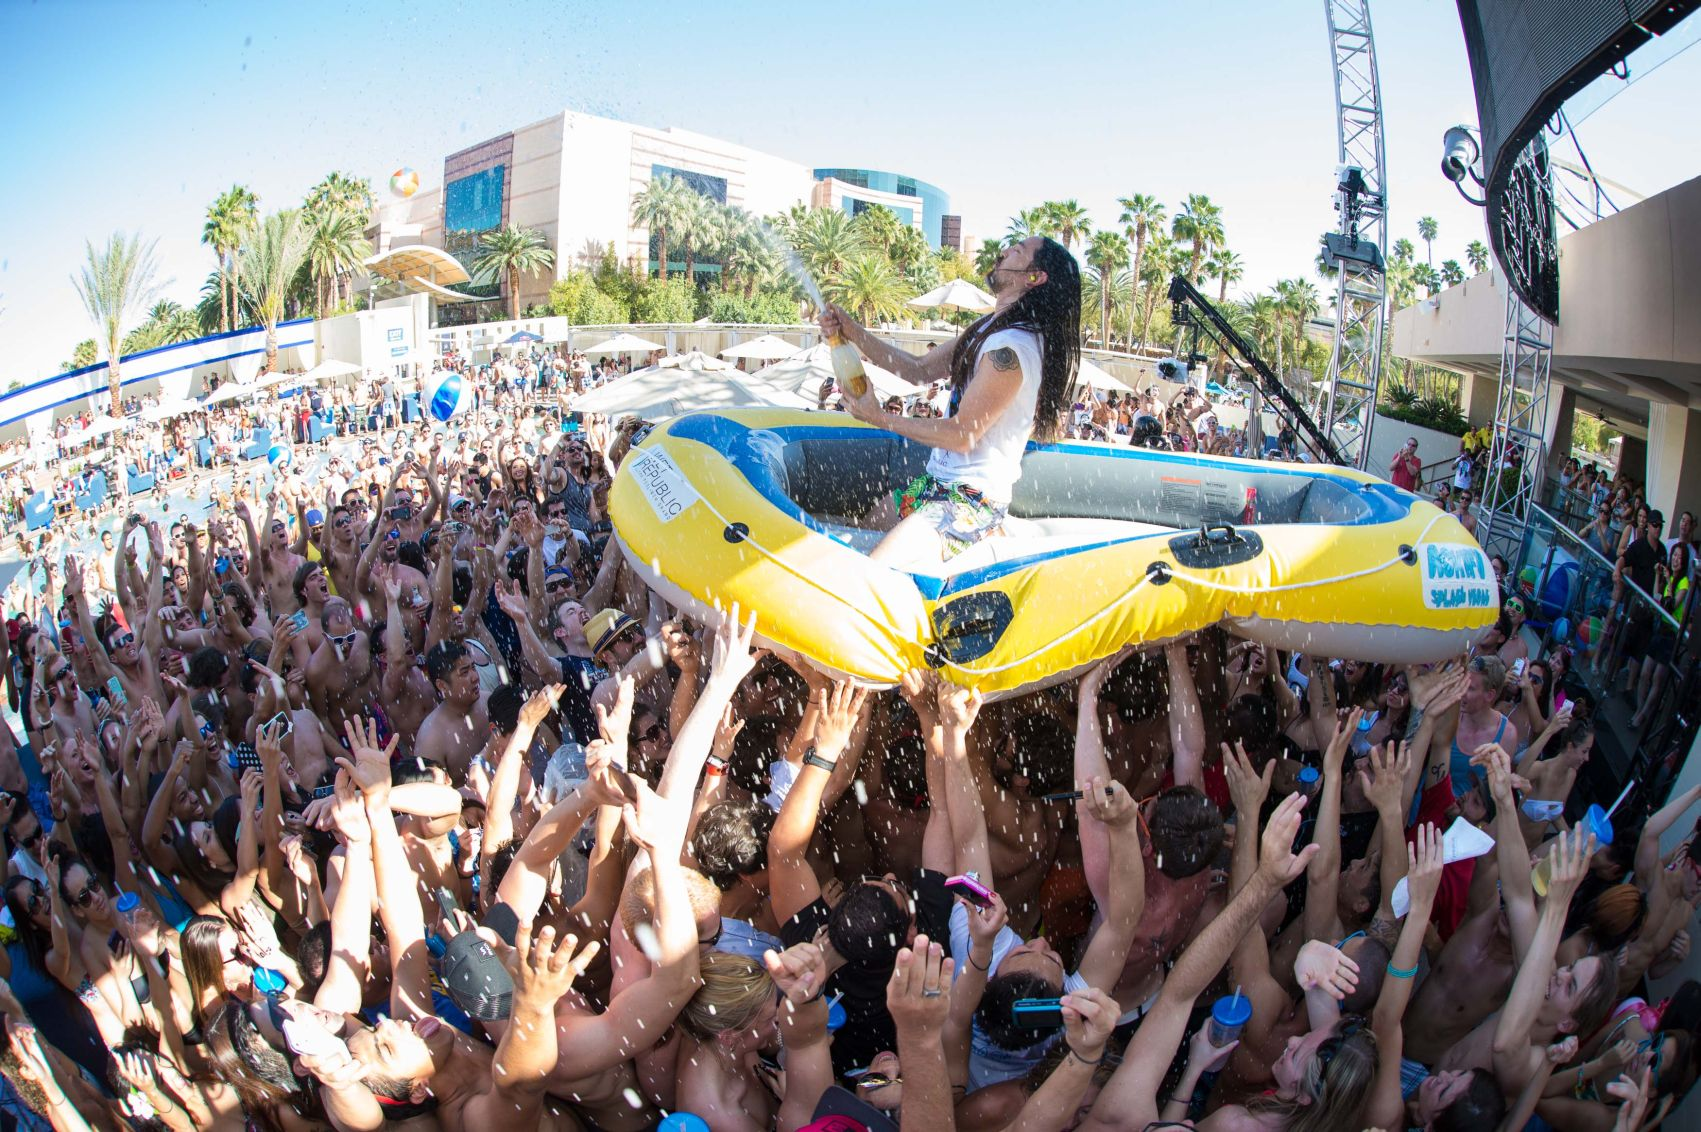 That's just Steve Aoki on a raft. No biggie. Photo courtesy of Wet Republic and Al Powers, Powersimagery.com.